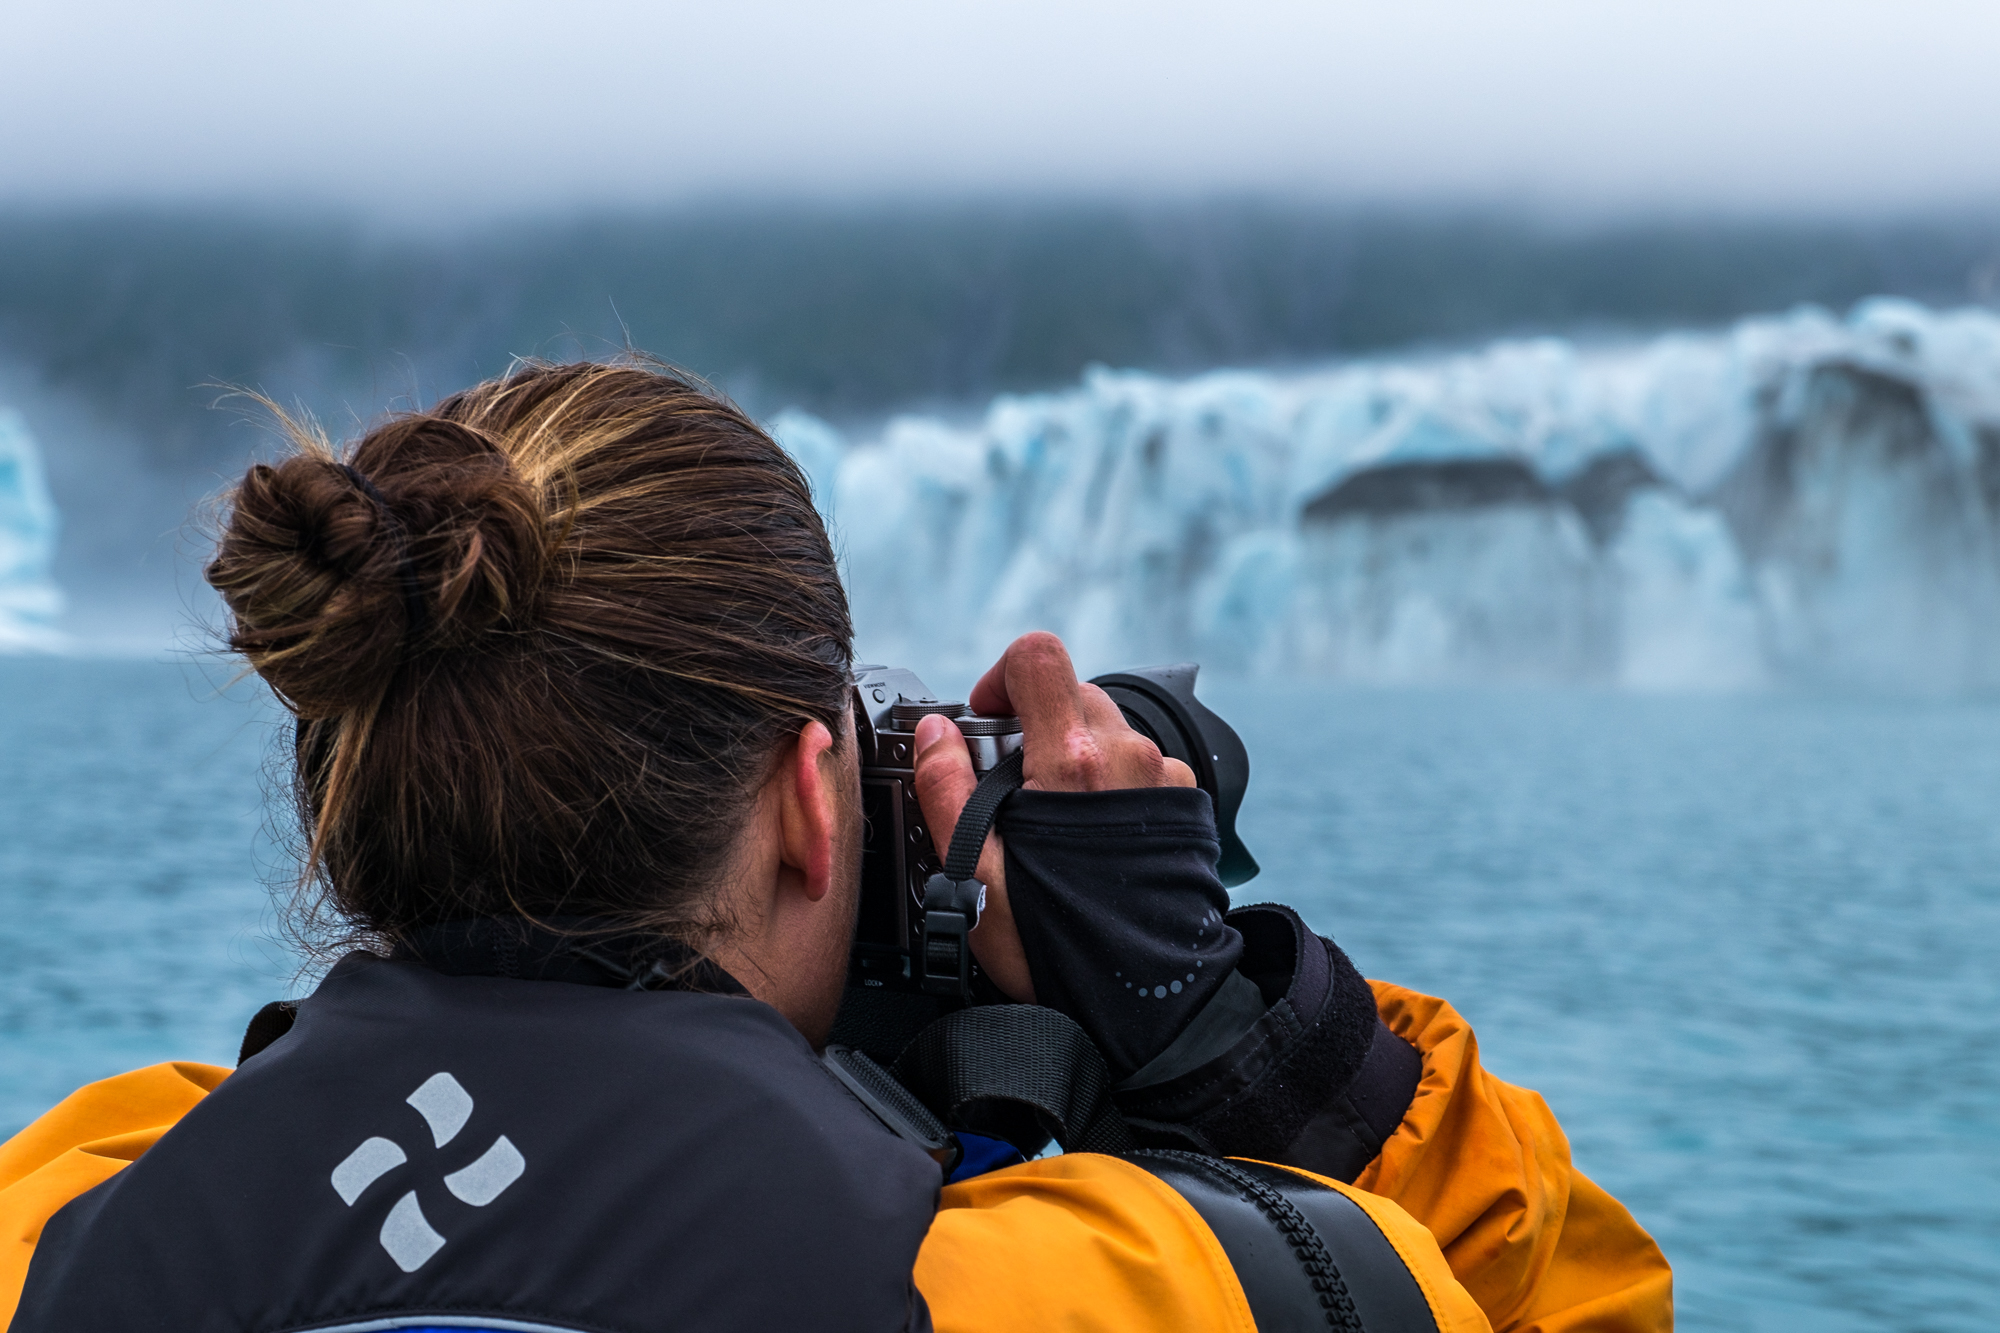 Stefanie Payne photographing icebergs in Kenai Fjords National Park with the Fujifilm X-T1.